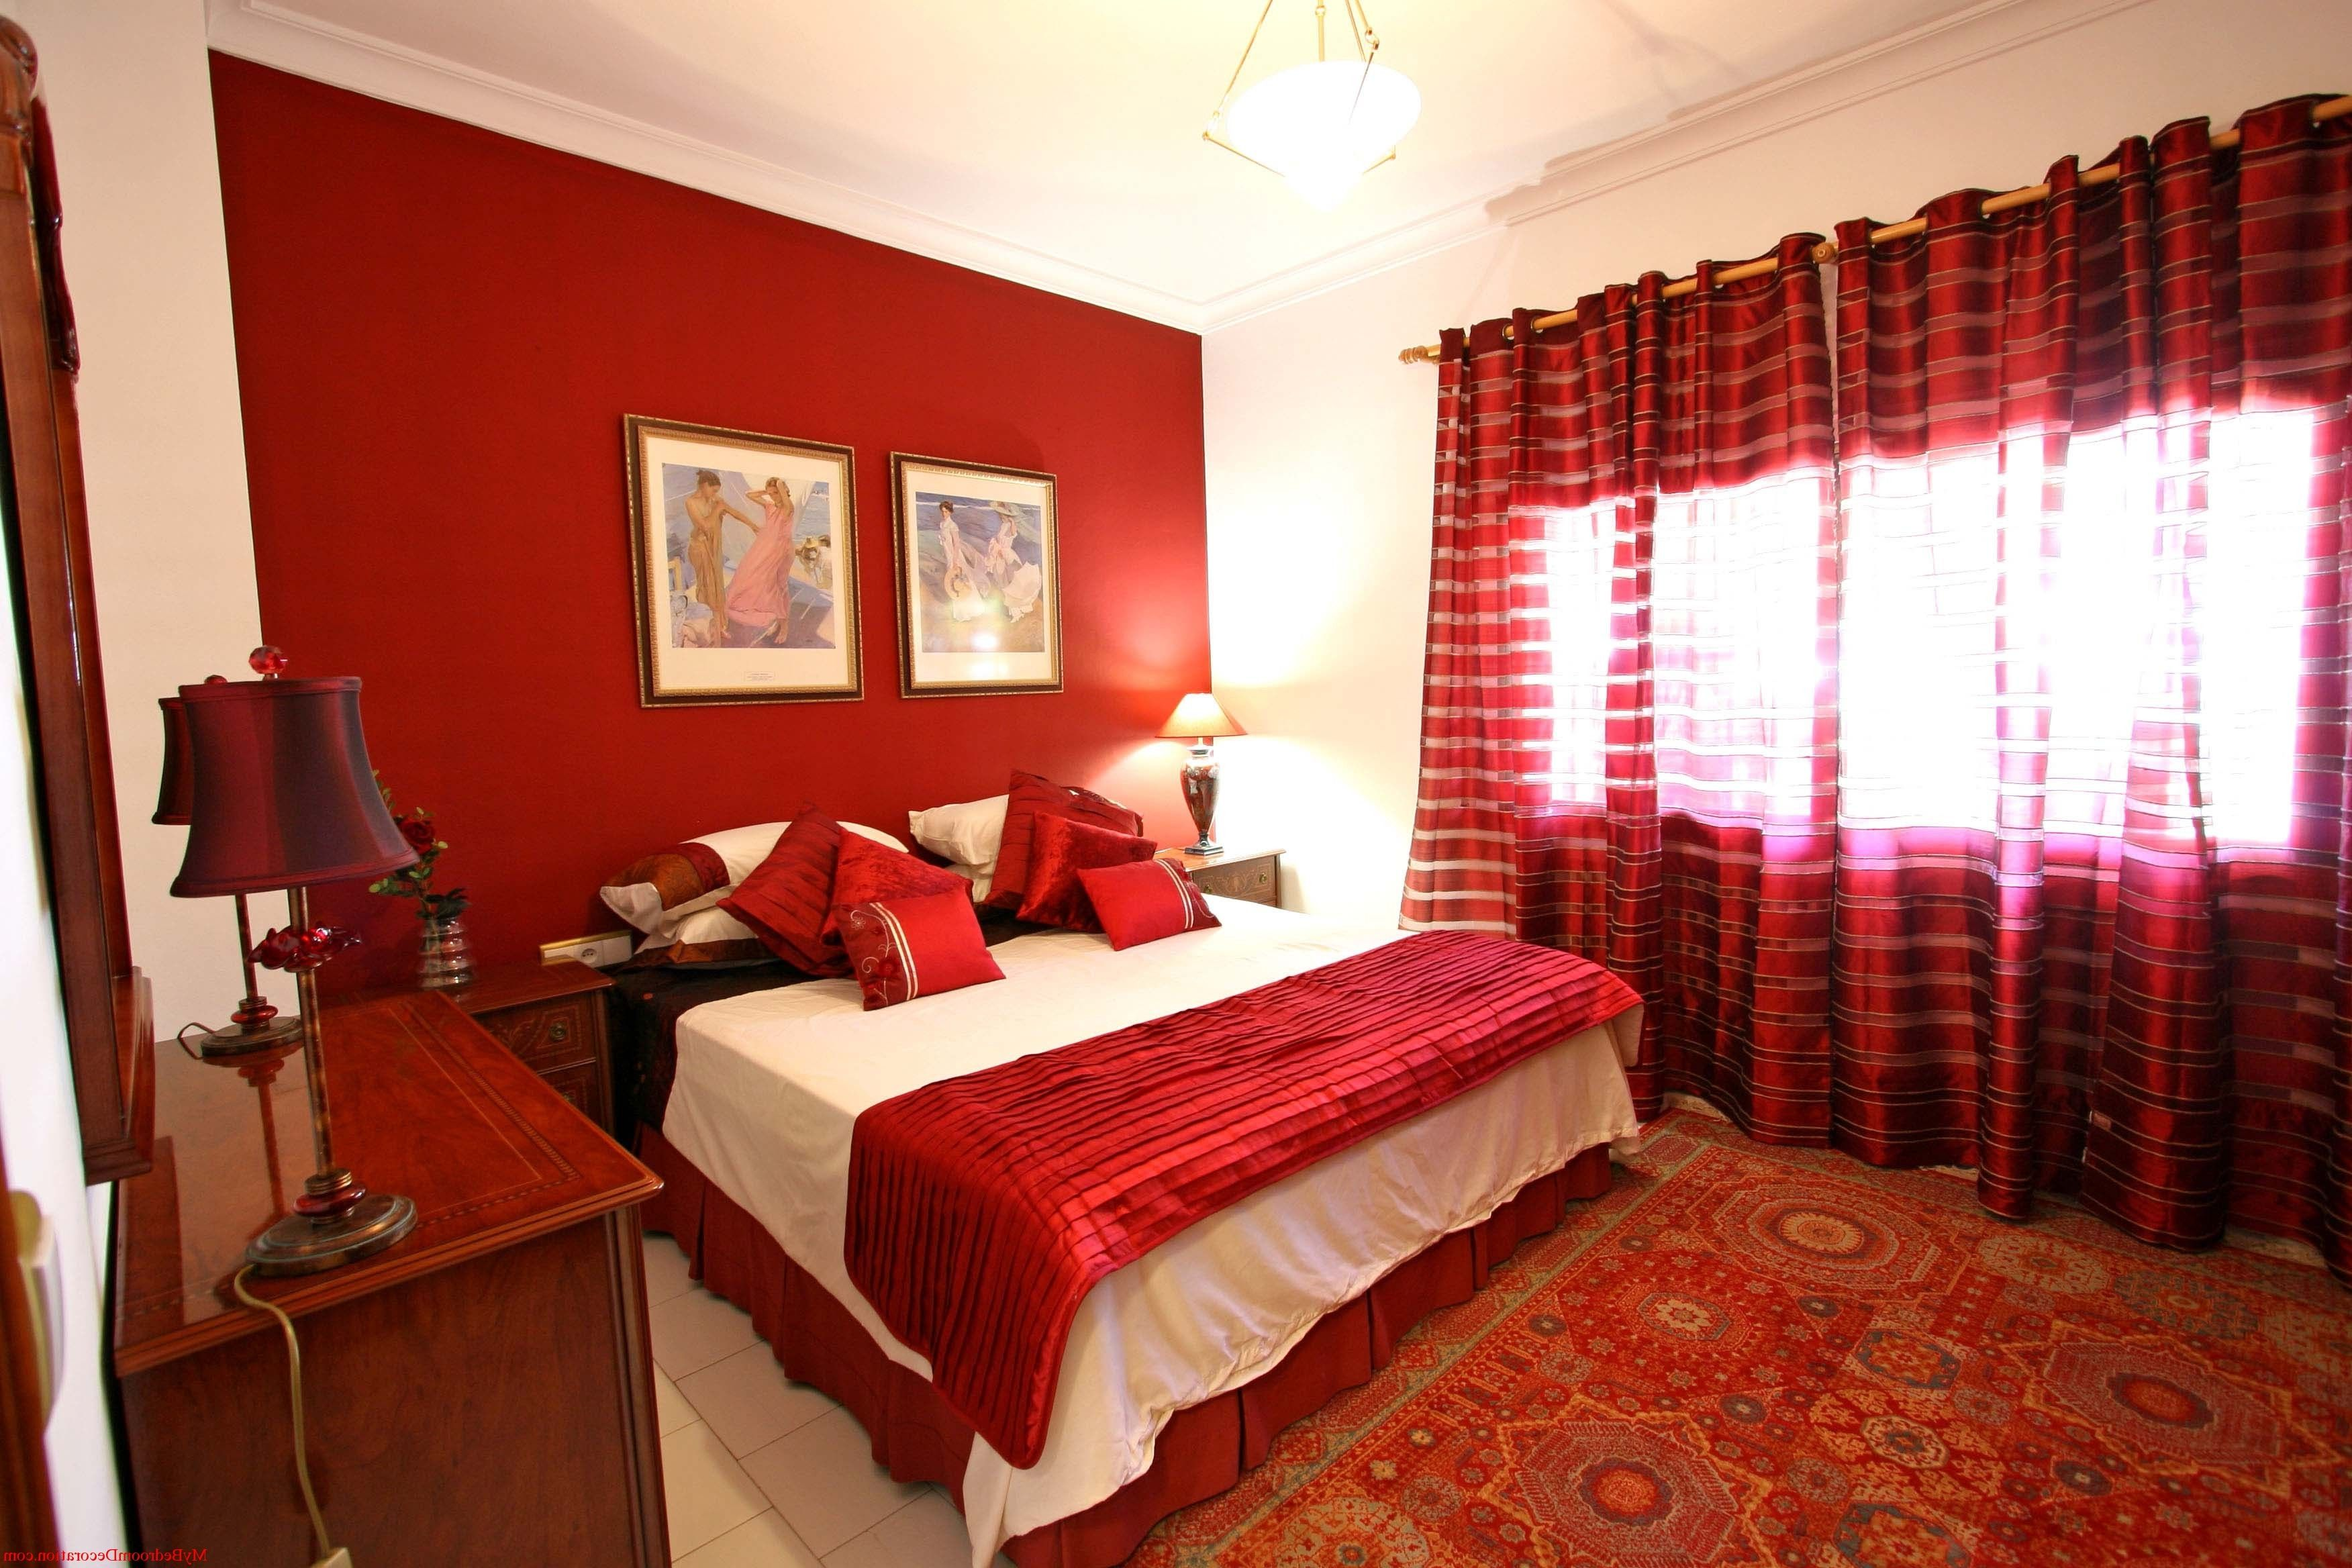 Exciting Bright Colored Room Ideas with Modern Style Furniture Ideas   Remarkable Bright Colored Room Ideas Romantic And Stylish Bedroom In Red  And White. Romantic Bedroom Decoration And Design For Couple With Red Theme